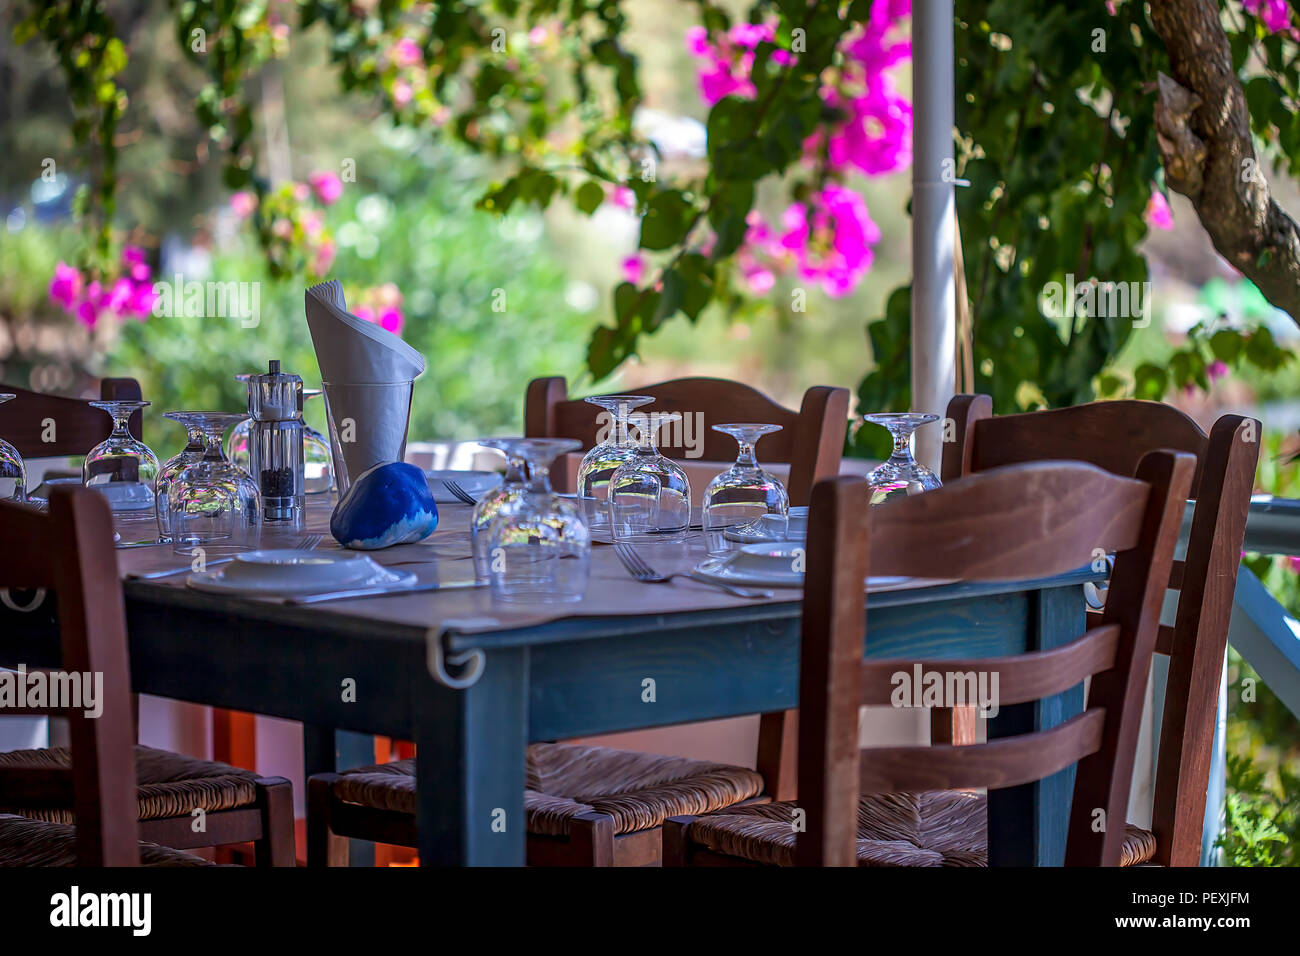 Table Set Up In Garden. Outdoor Garden Table With Pink ...